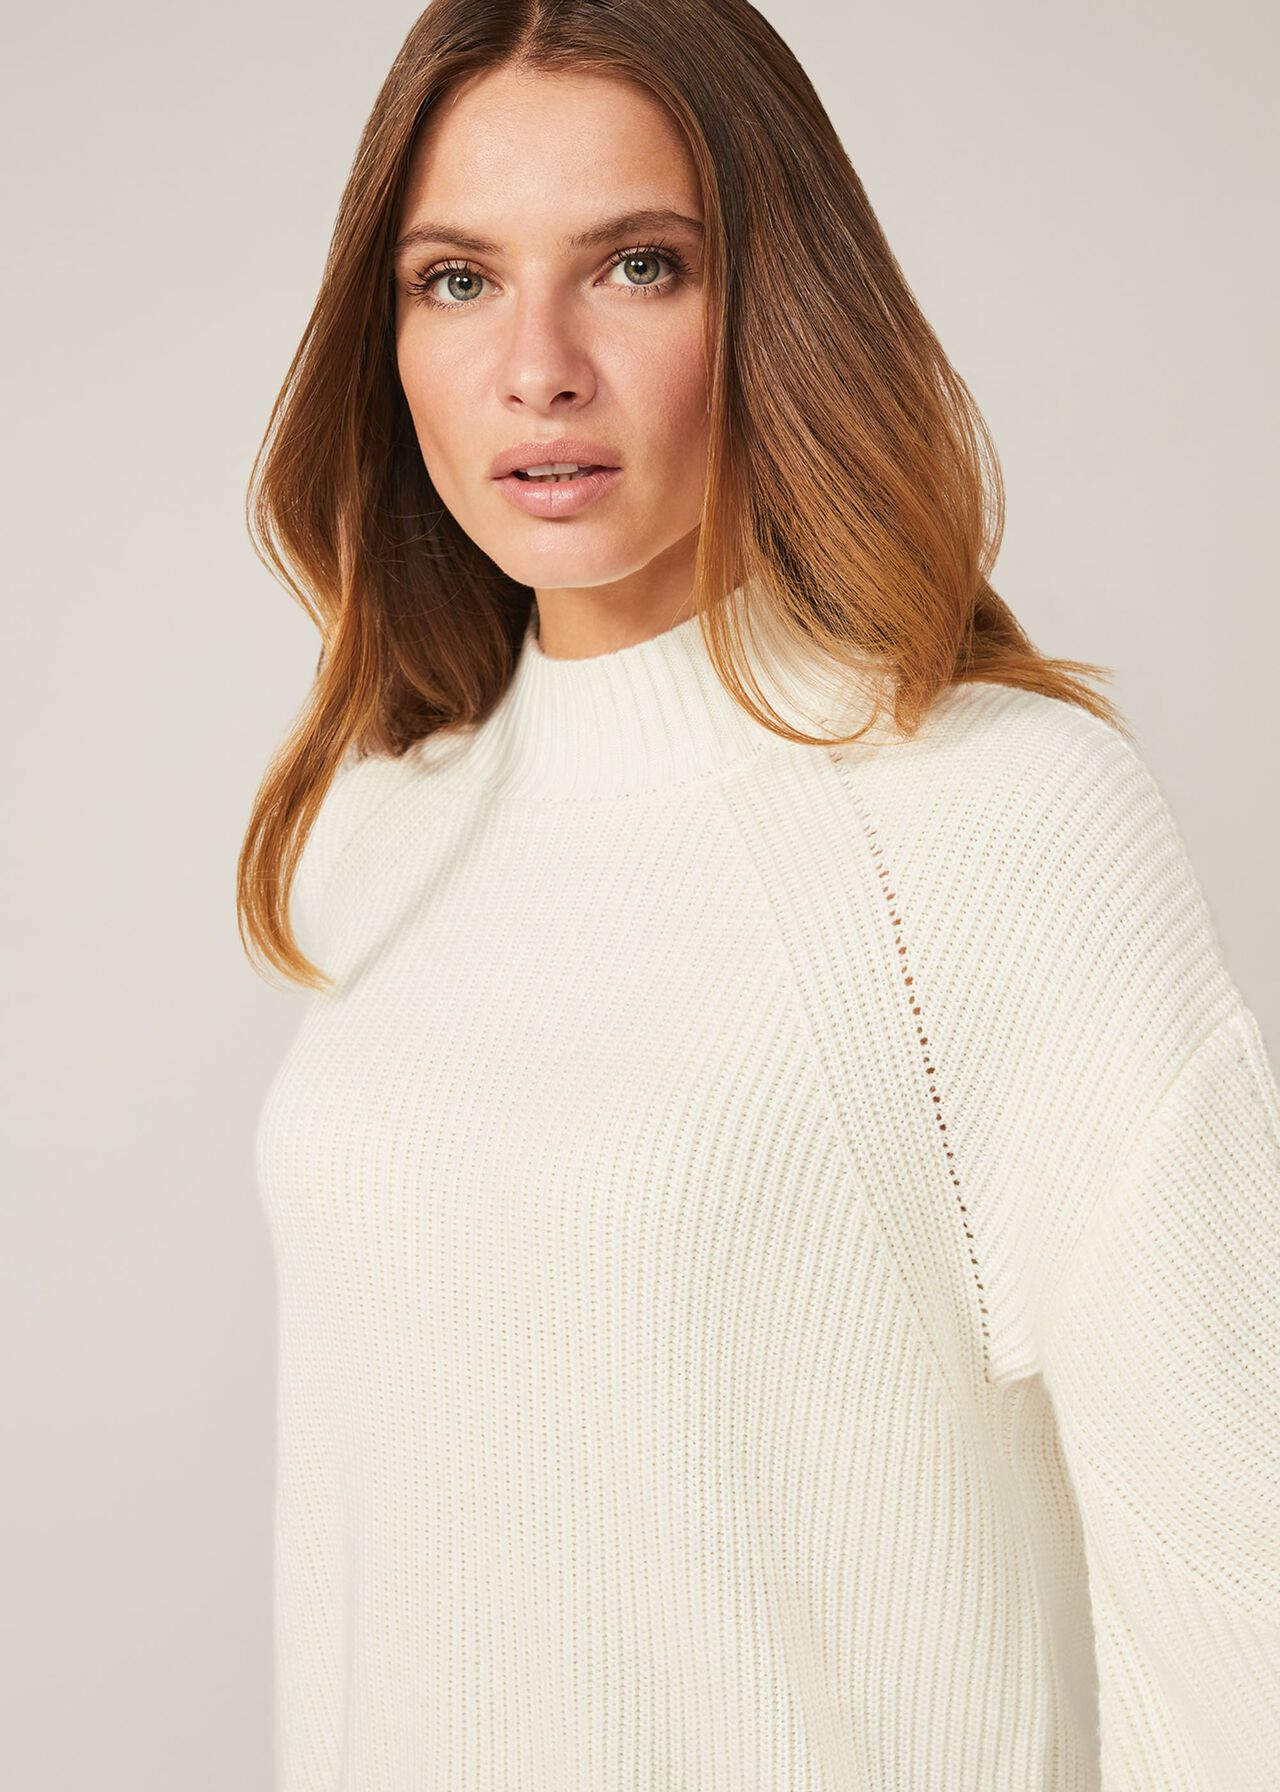 Caro Balloon Sleeve Knit